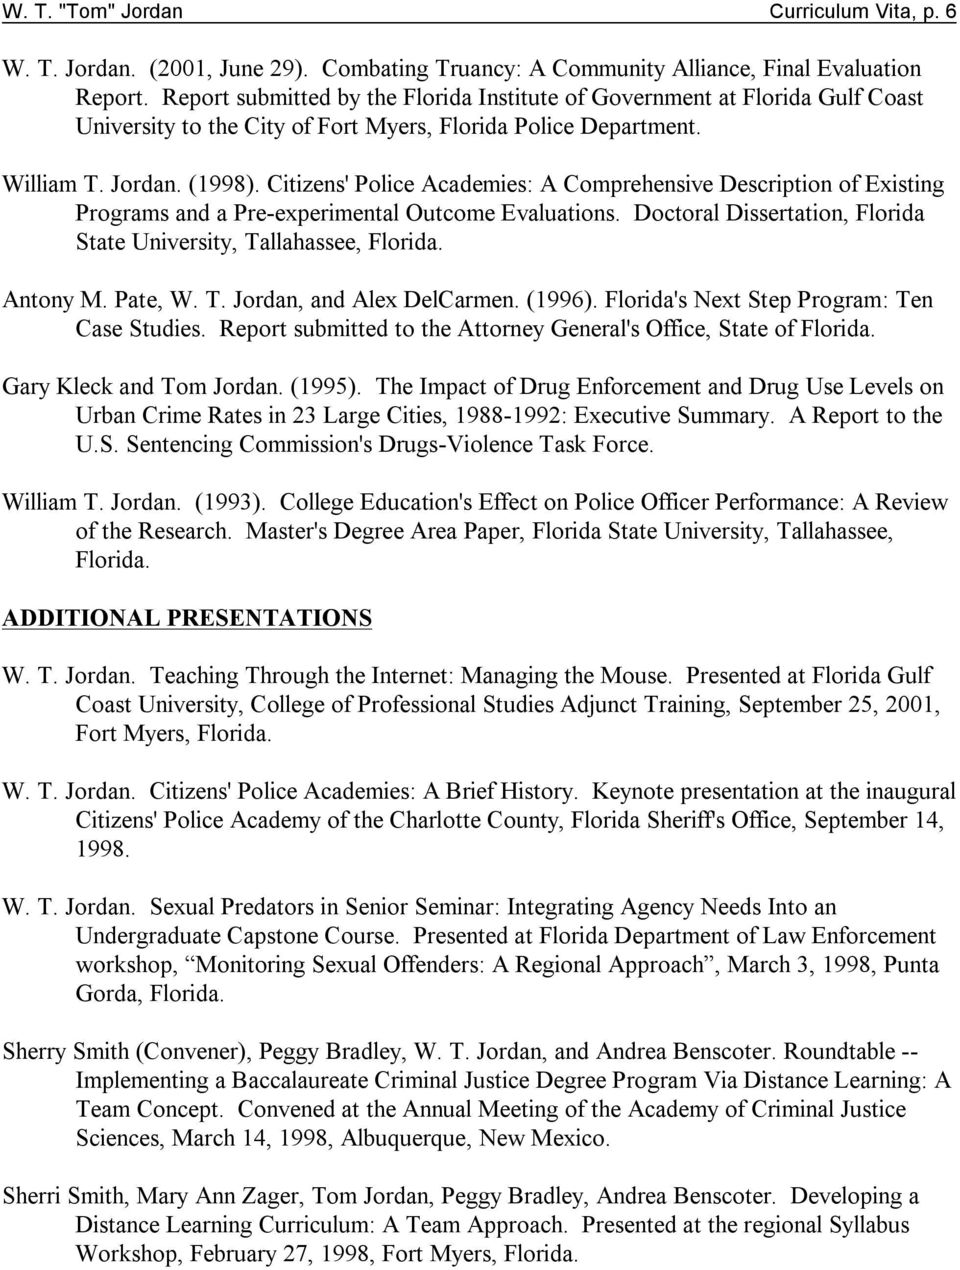 Citizens' Police Academies: A Comprehensive Description of Existing Programs and a Pre-experimental Outcome Evaluations. Doctoral Dissertation, Florida State University, Tallahassee, Florida.